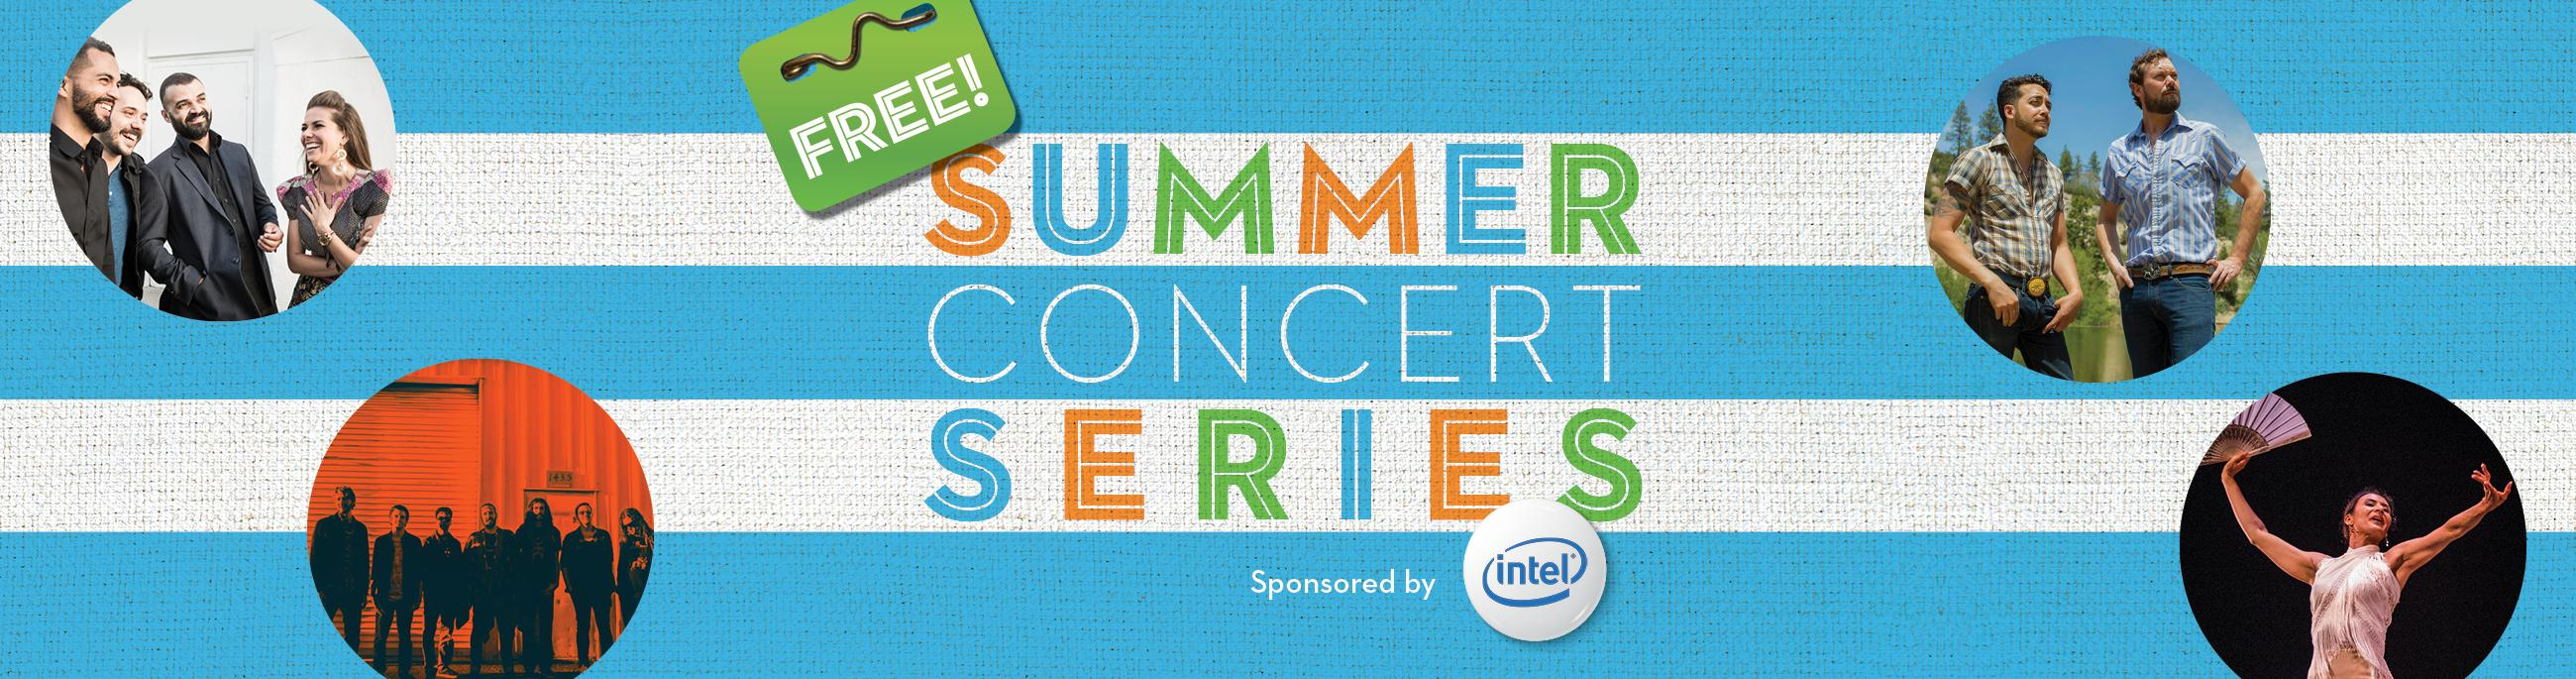 Free Summer Concert Series at Chandler Center for the Arts presented by Intel